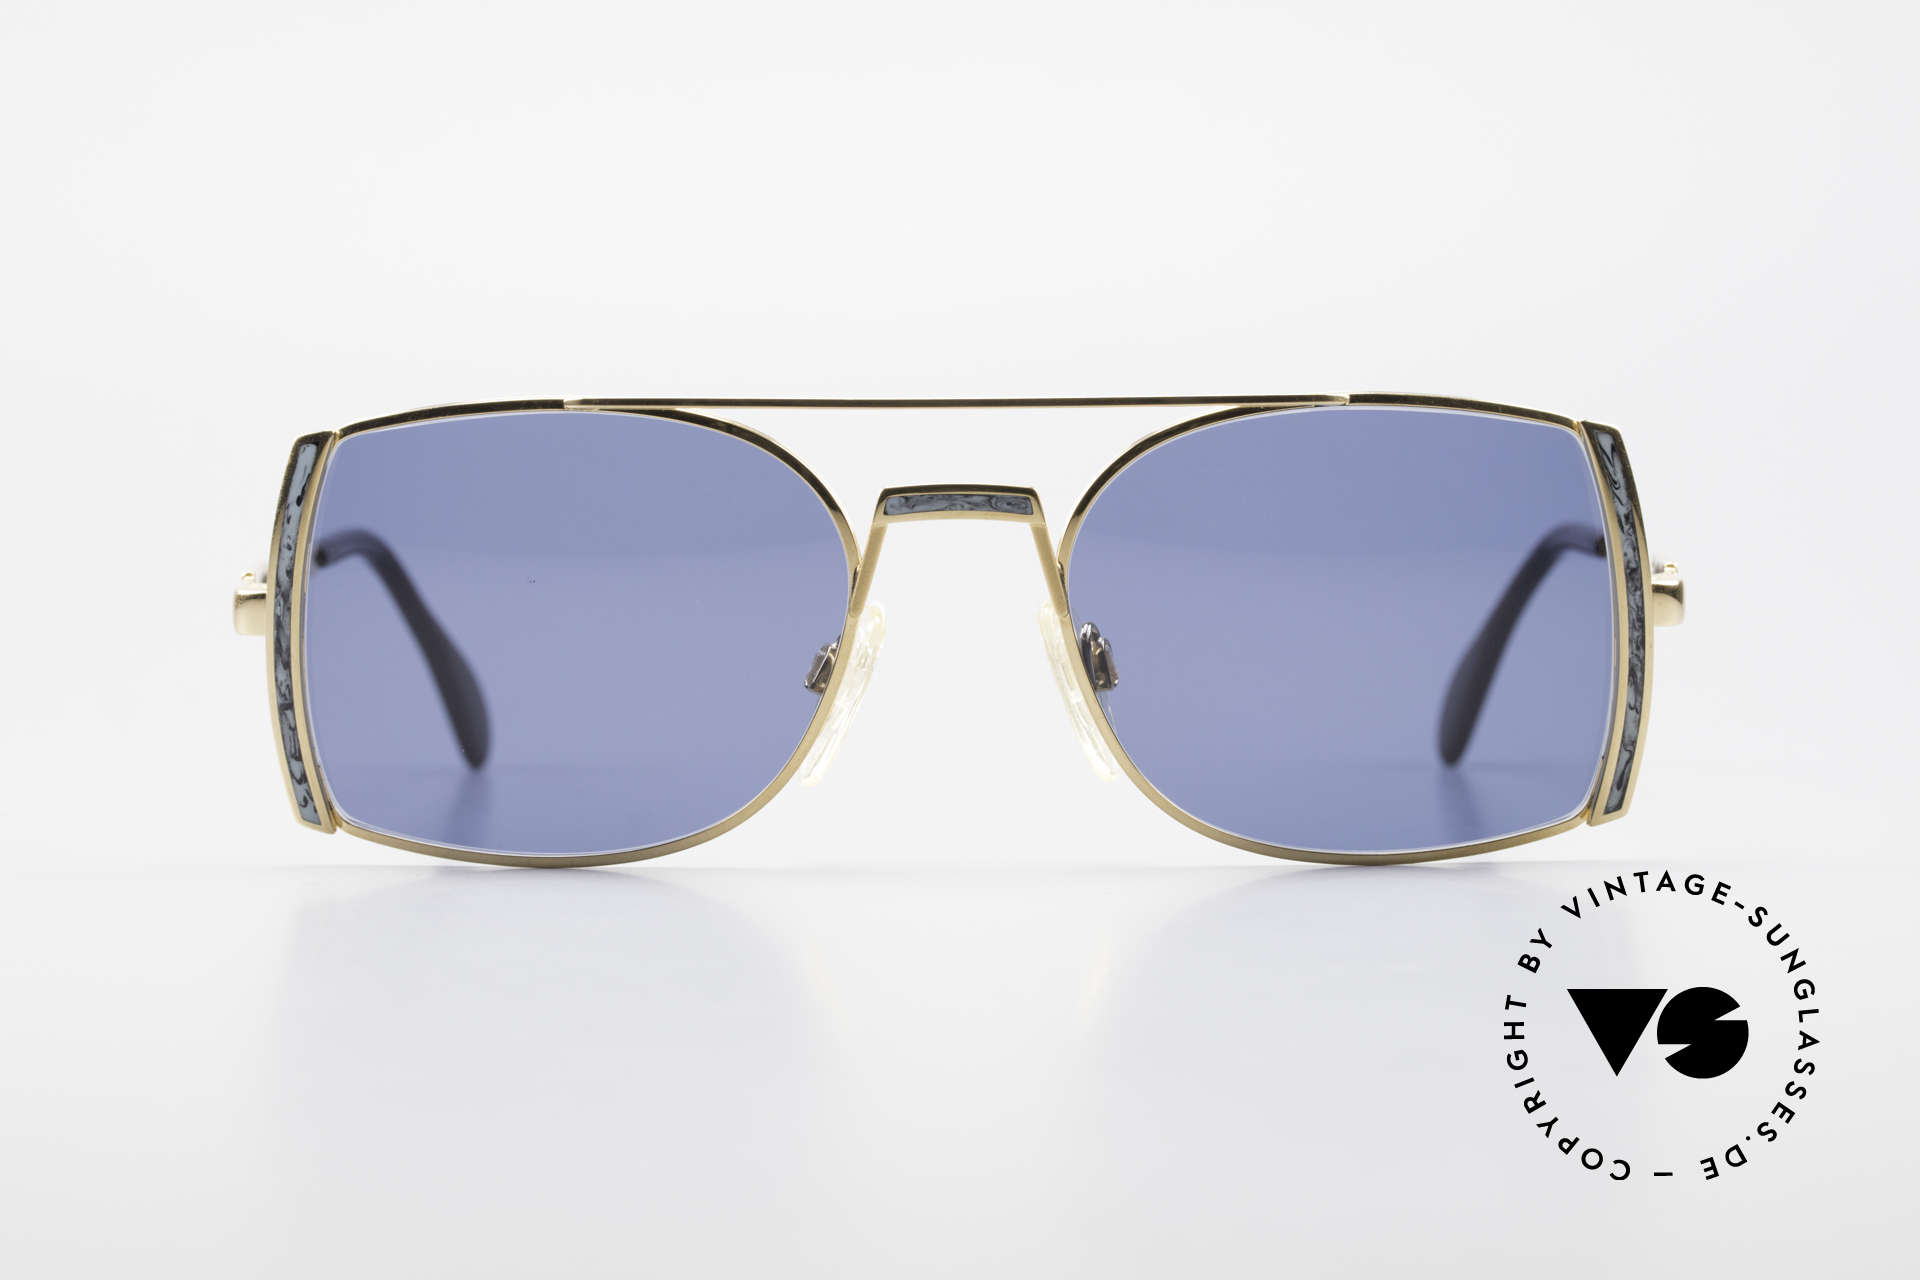 Cazal 242 Tyga Hip Hop Vintage Shades, a.o. worn by the rapper 'Tyga' (BET-Awards, 2011), Made for Men and Women